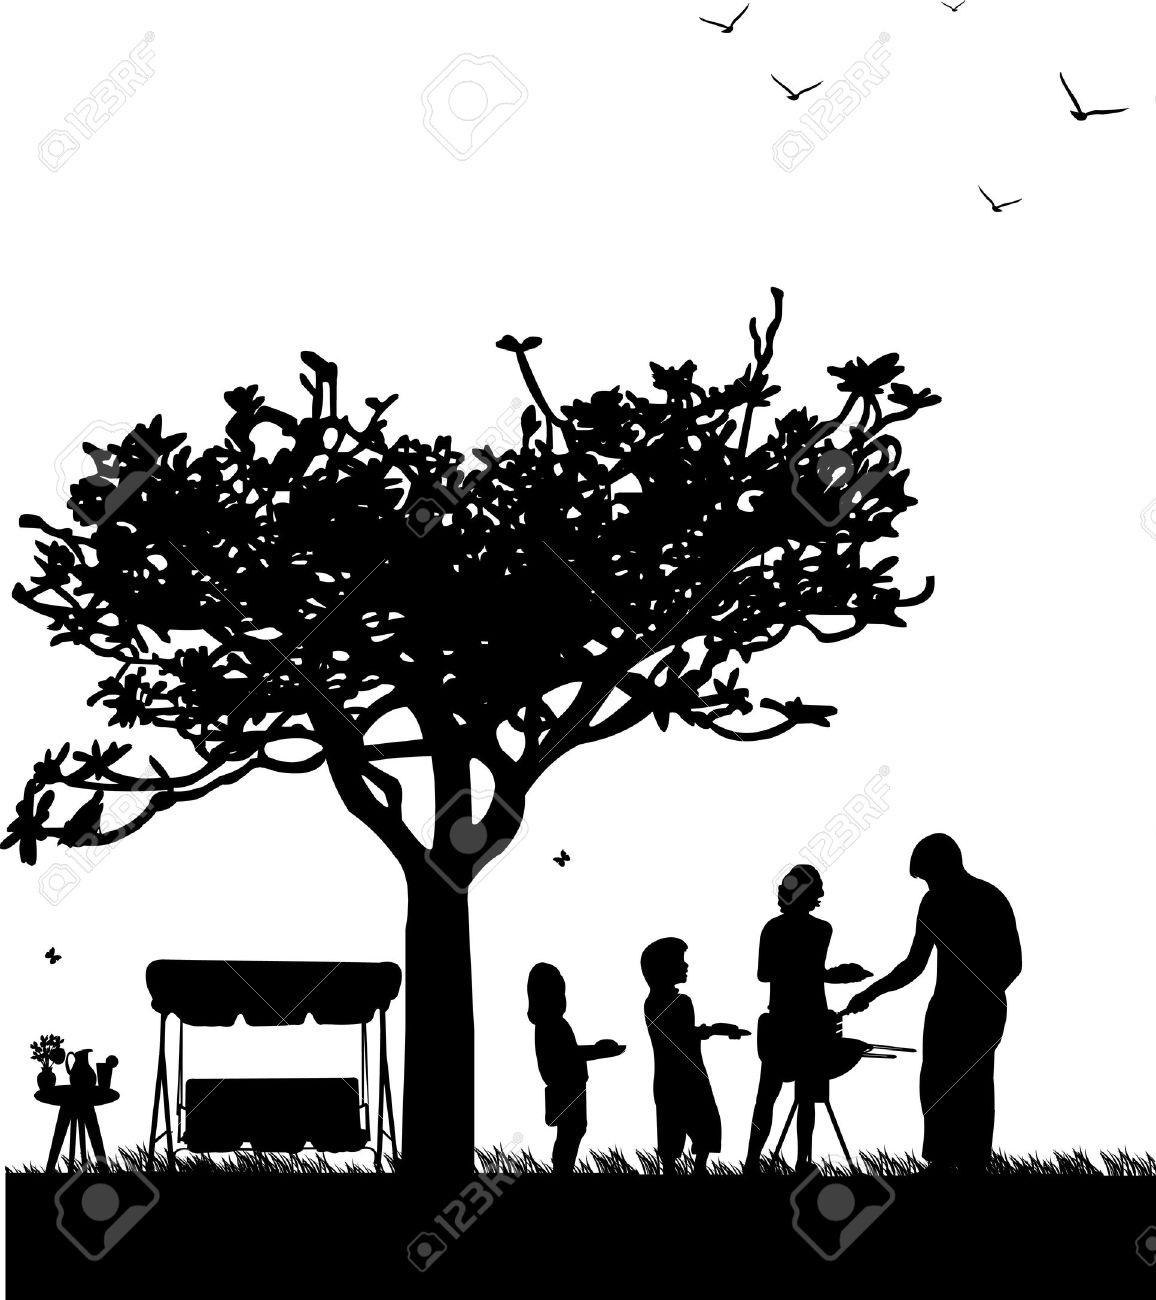 Cookout clipart black family. Bbq image group grill